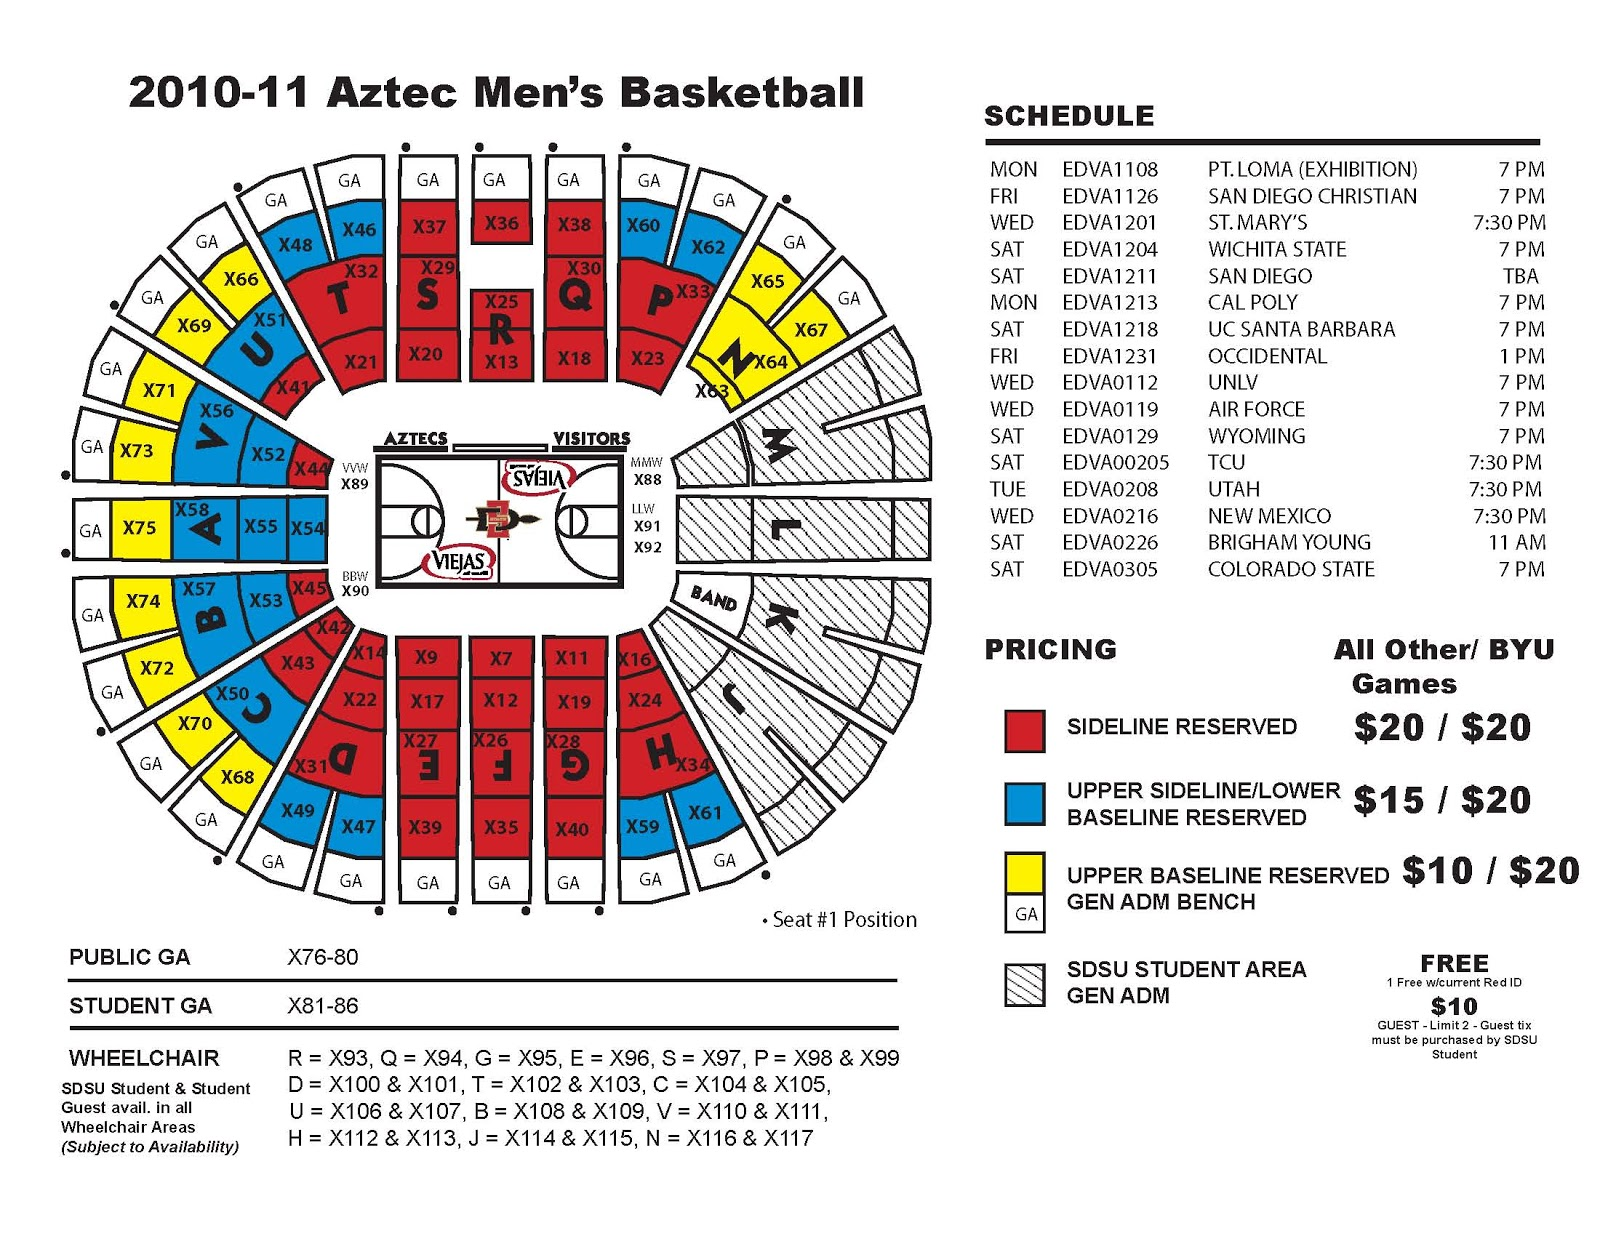 Thomas Mack Center Seating Chart Rebel Reign The Source For Unlv Basketball Tickets Please Jpg 1600x1236